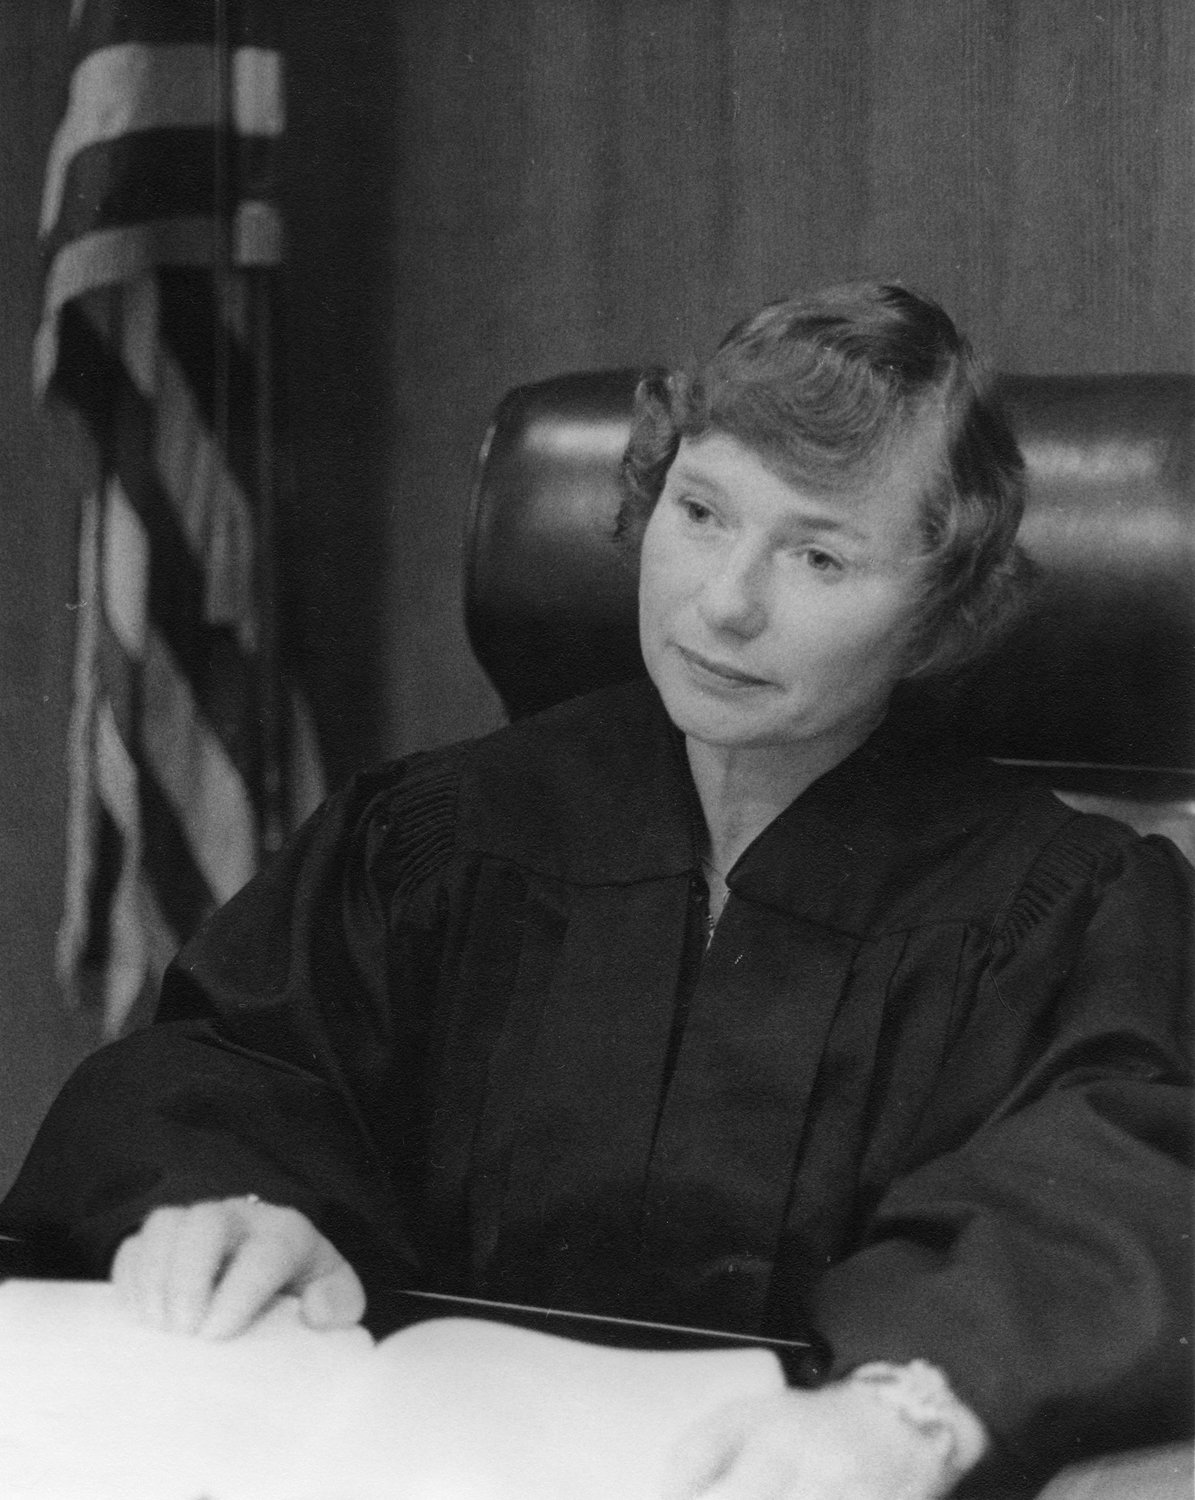 In this photo, circa 1980, Judge Carol Fuller is shown on the Superior Court Bench.